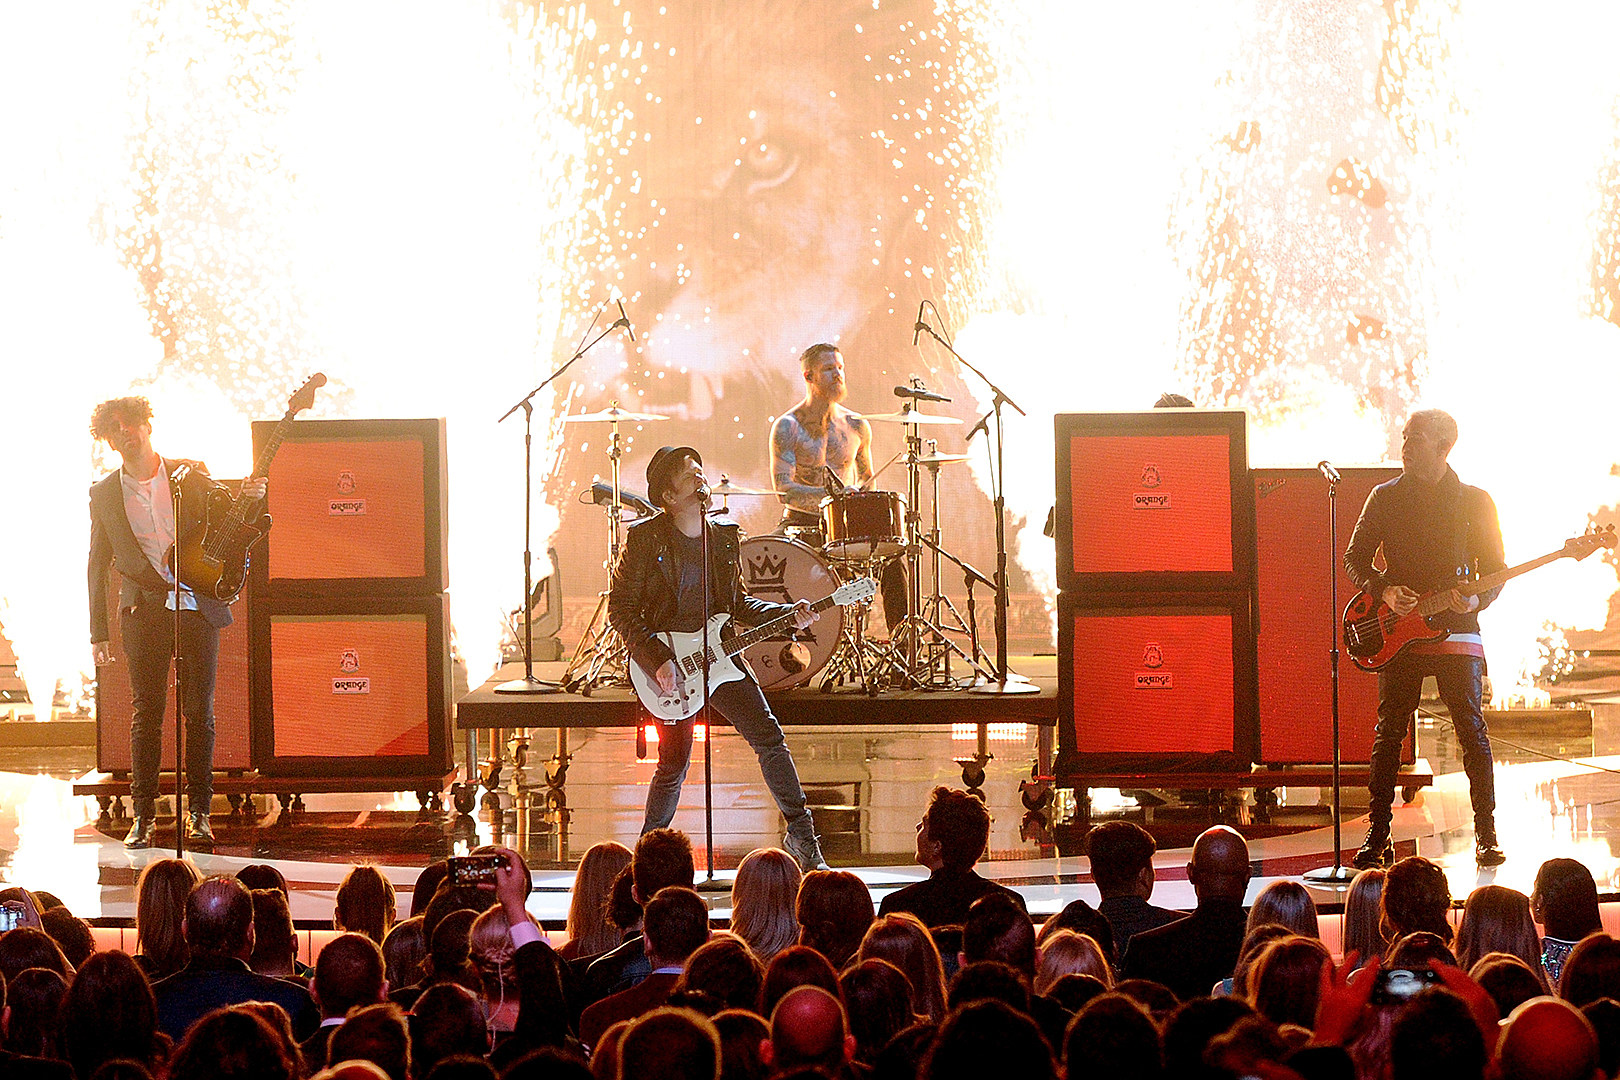 Fall Out Boy to Live Stream Upcoming Las Vegas Concert